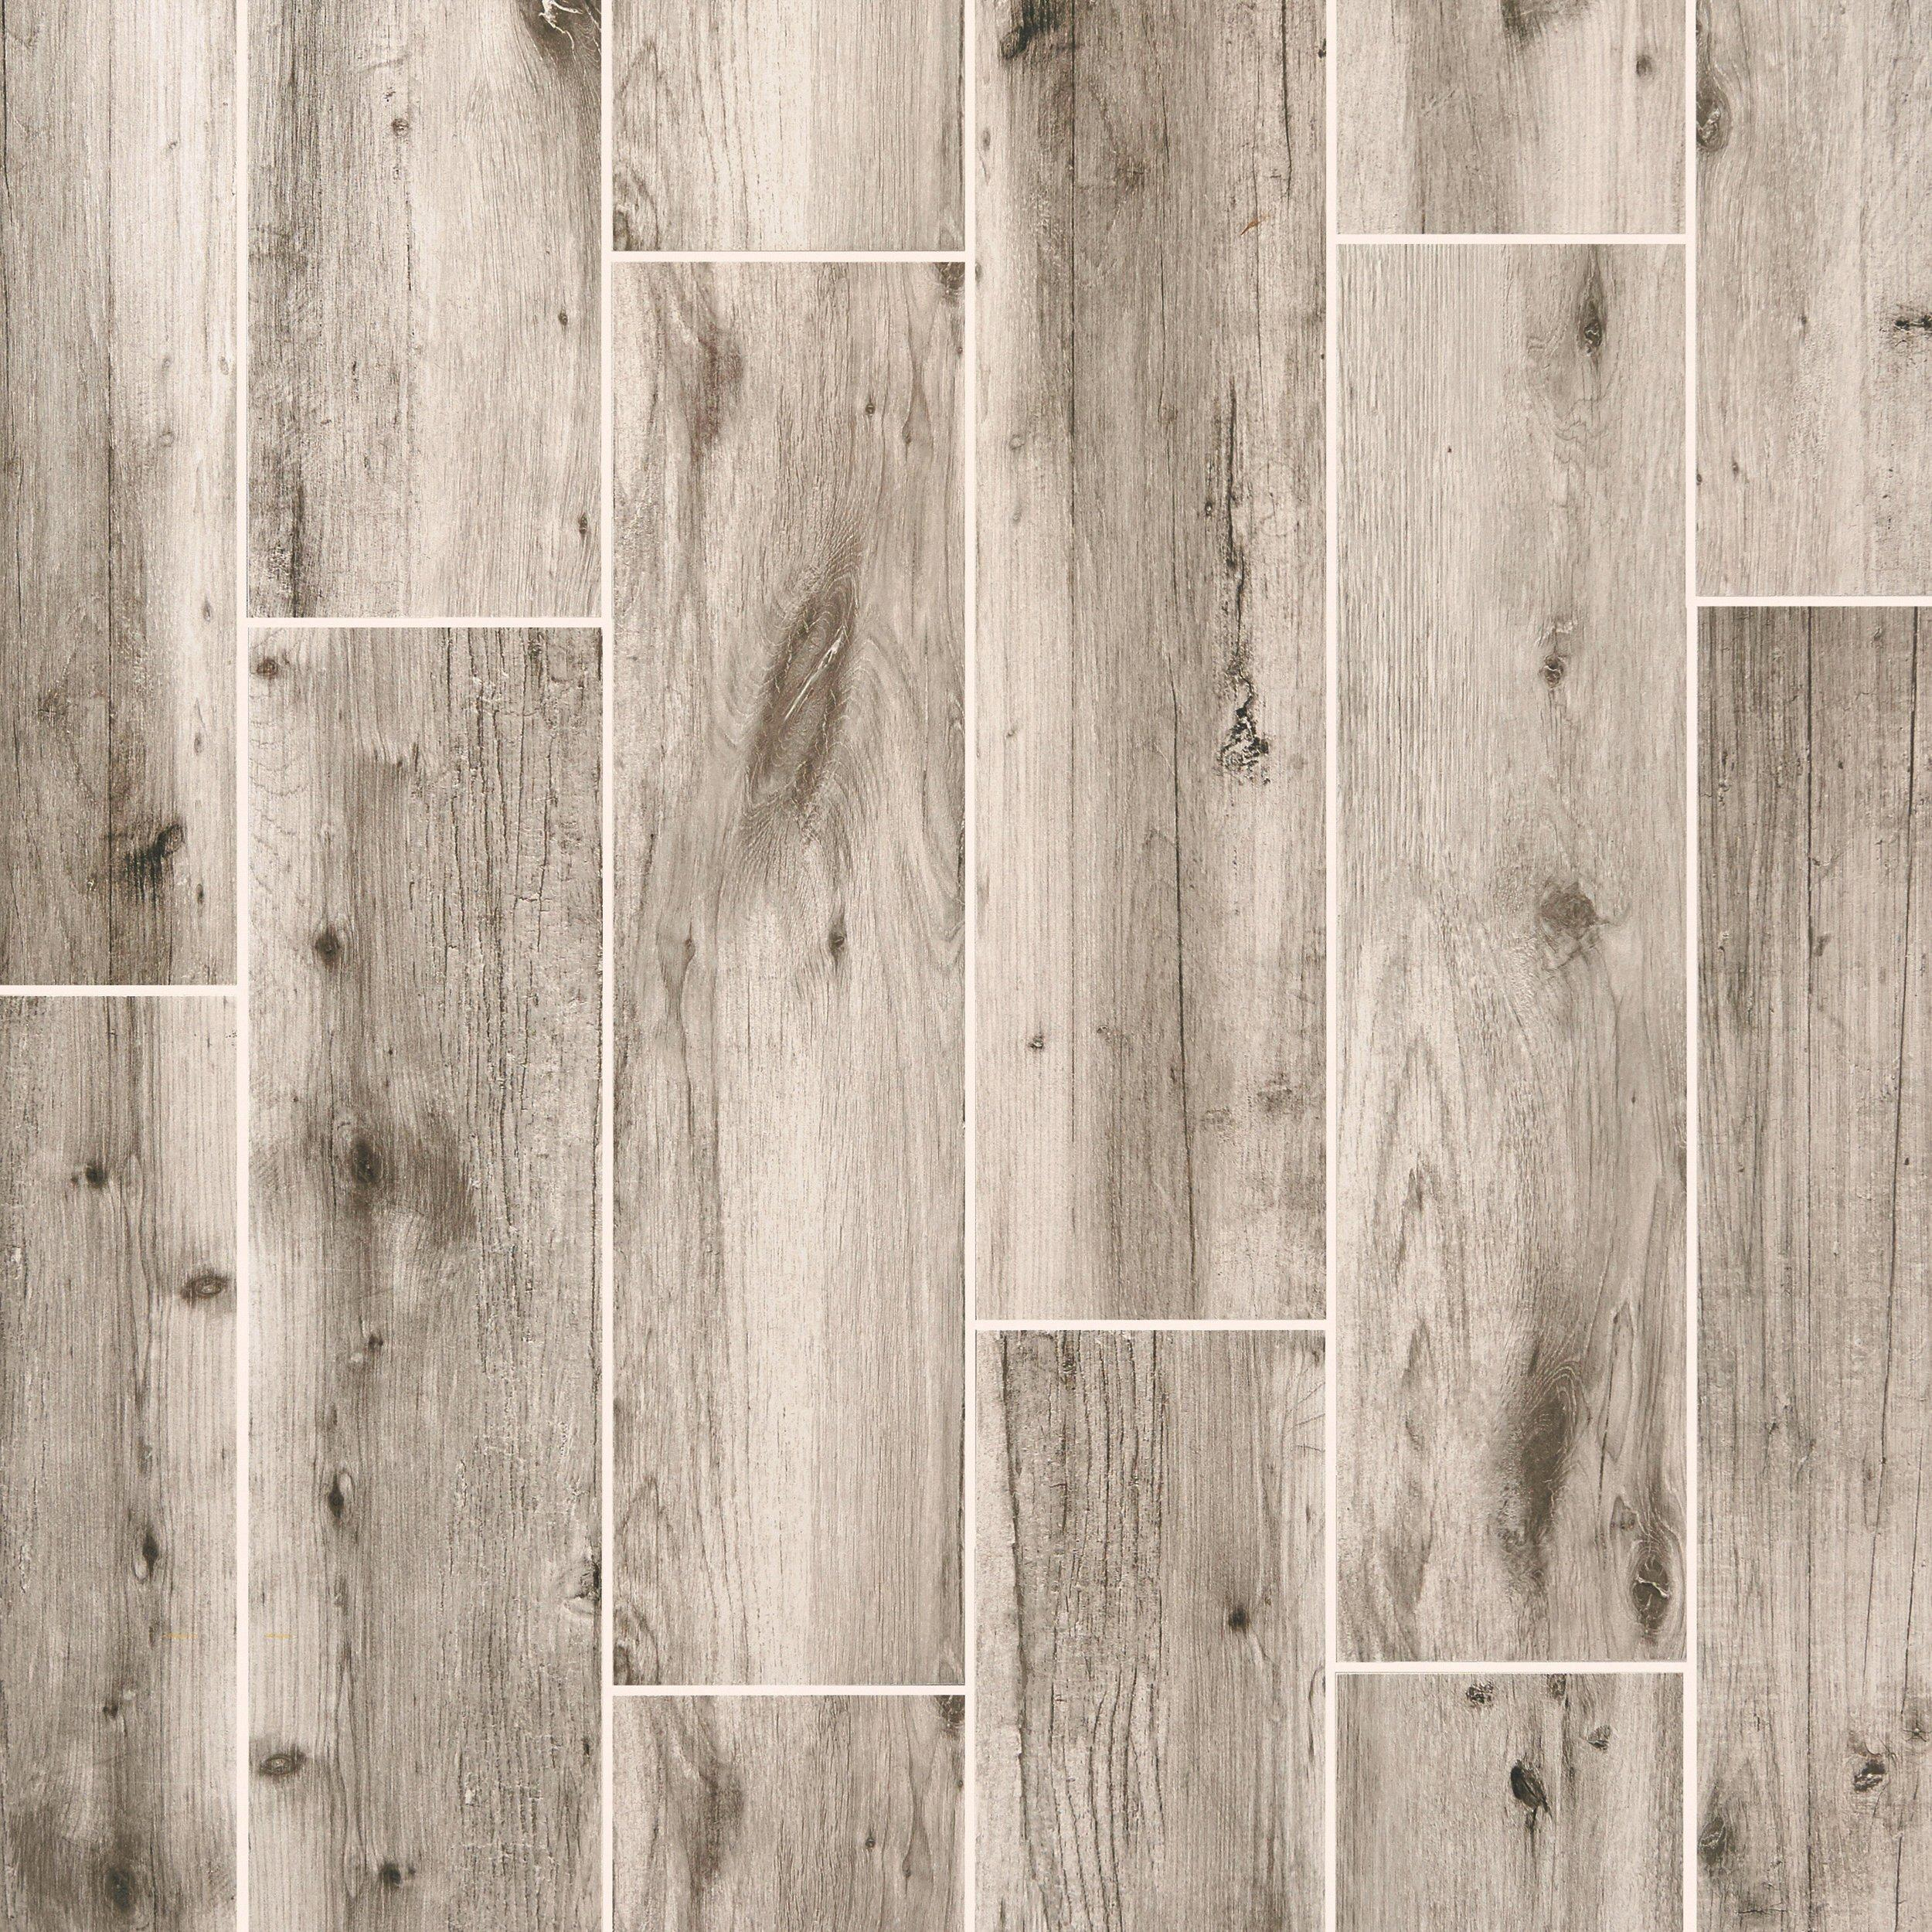 Wood plank tile wood look tile floor decor dailygadgetfo Image collections